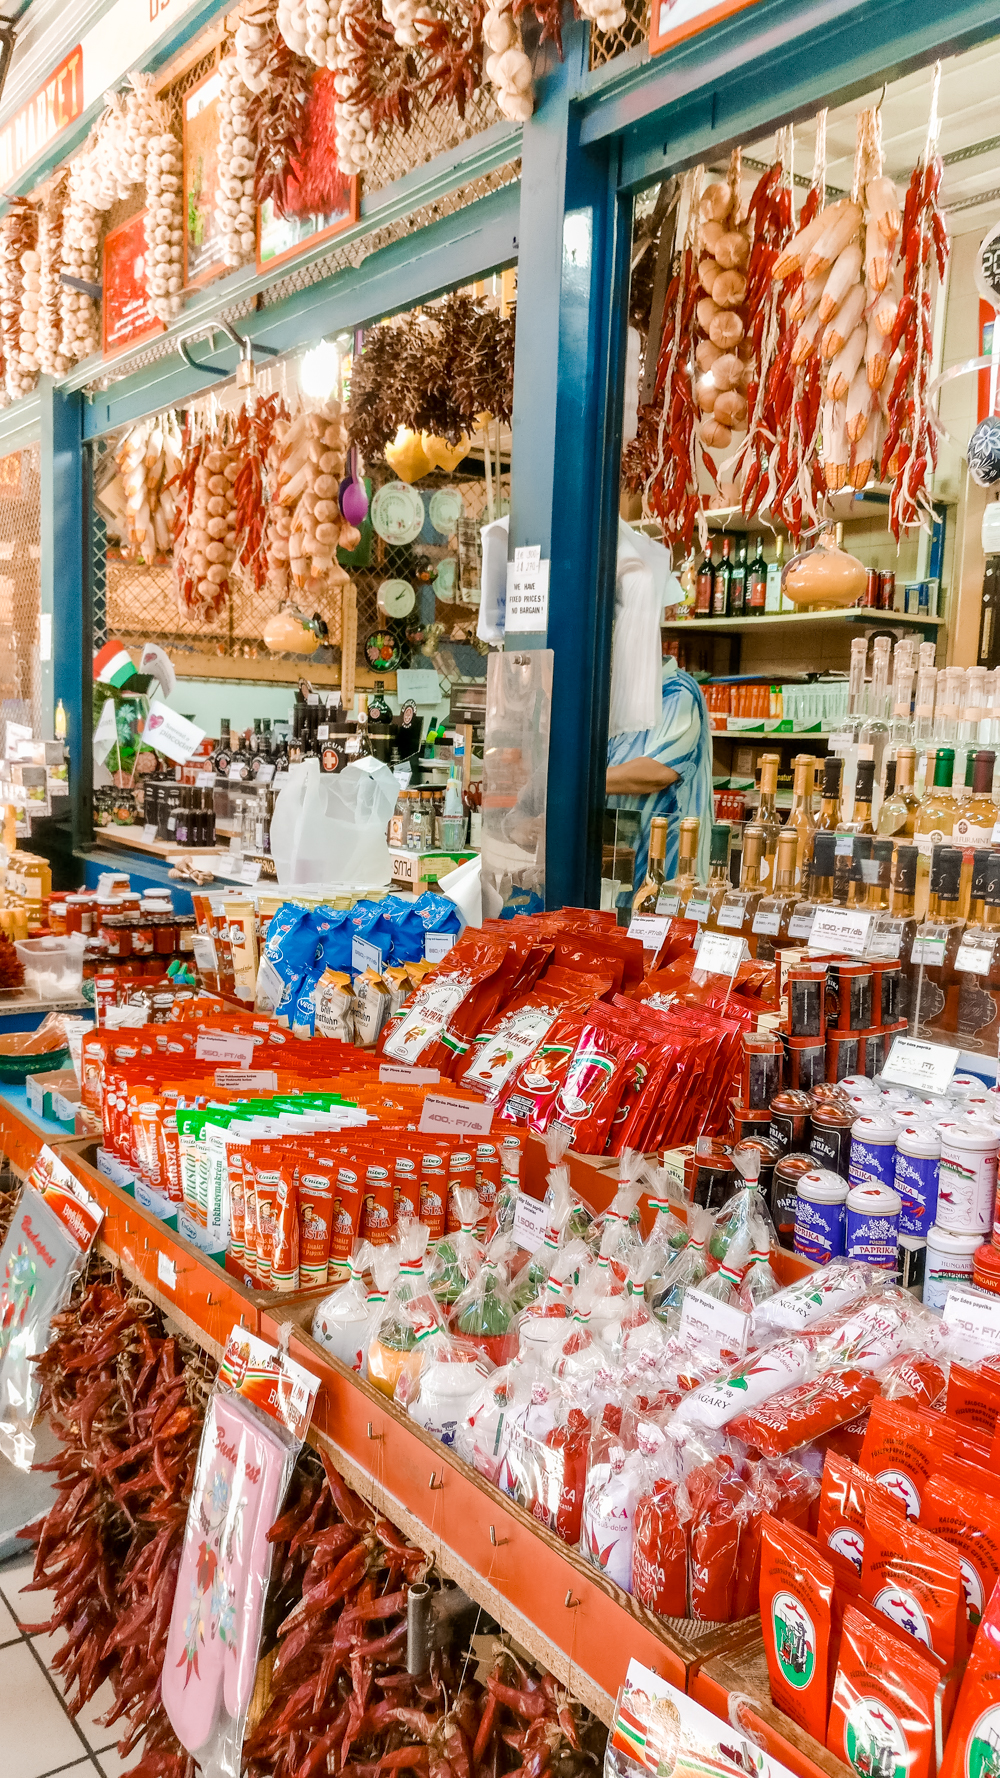 Paprika at Great Market Hall (Nagy Vásárcsarnok) - How to explore Budapest in 2 days? - a local's travel guide with prices and map | Aliz's Wonderland